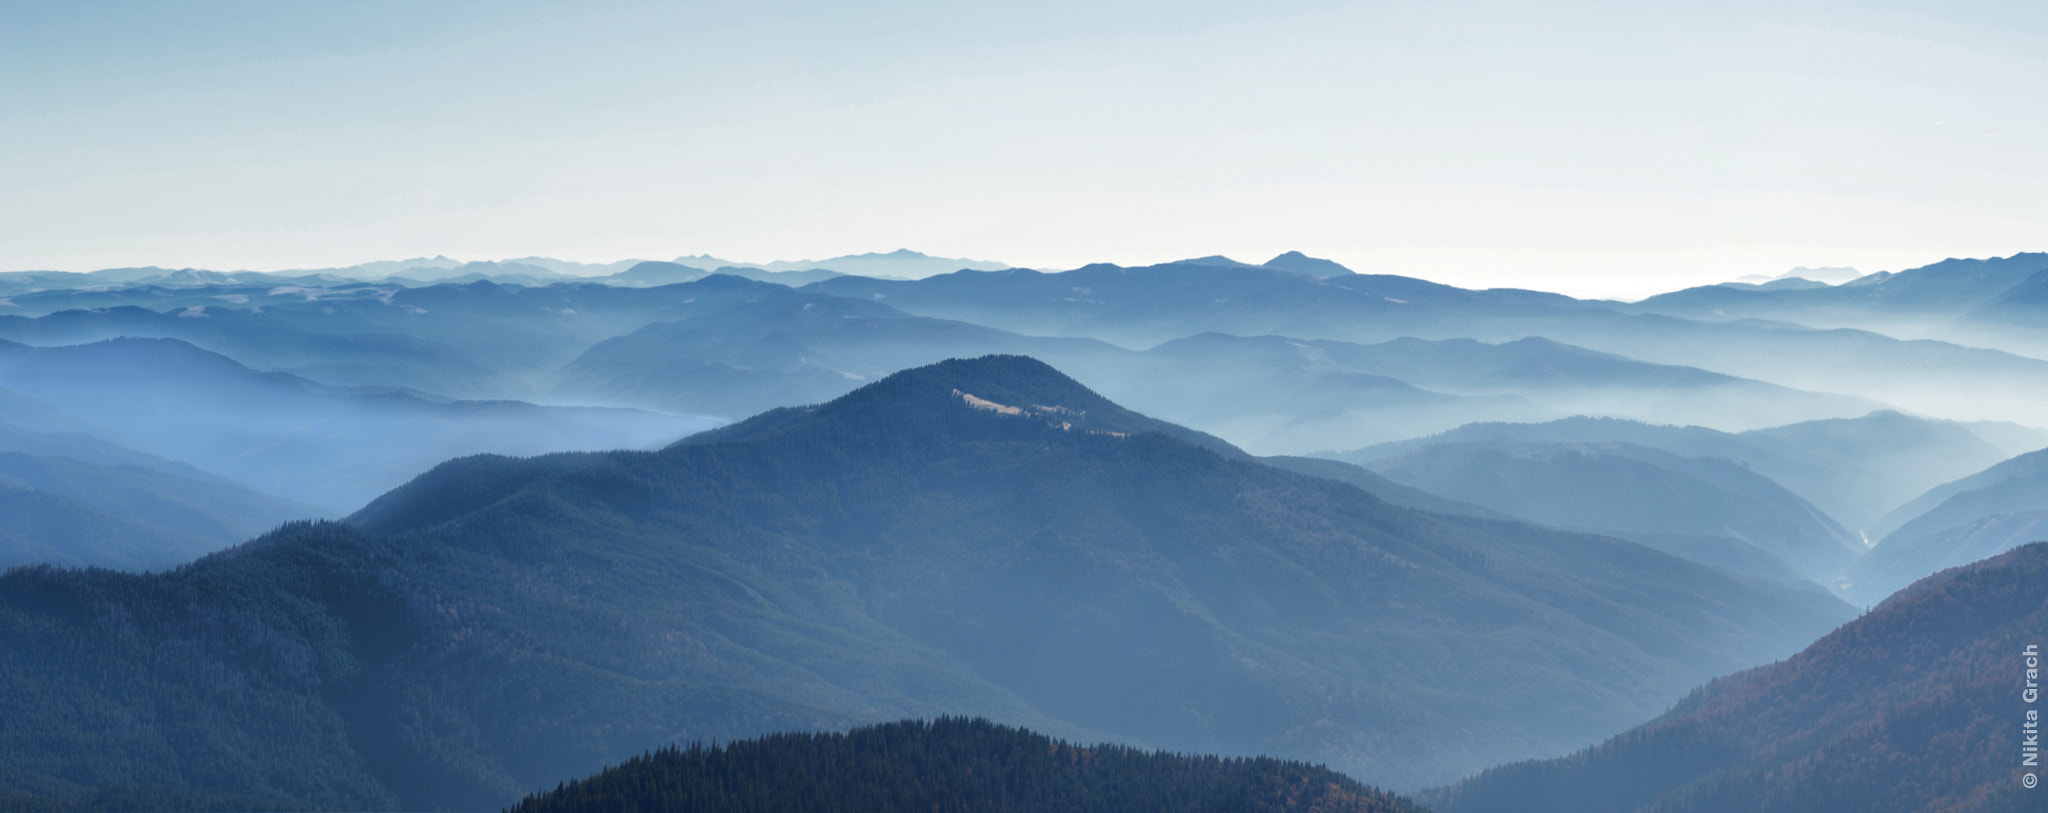 Photograph Over the hills by Nikita Grach on 500px